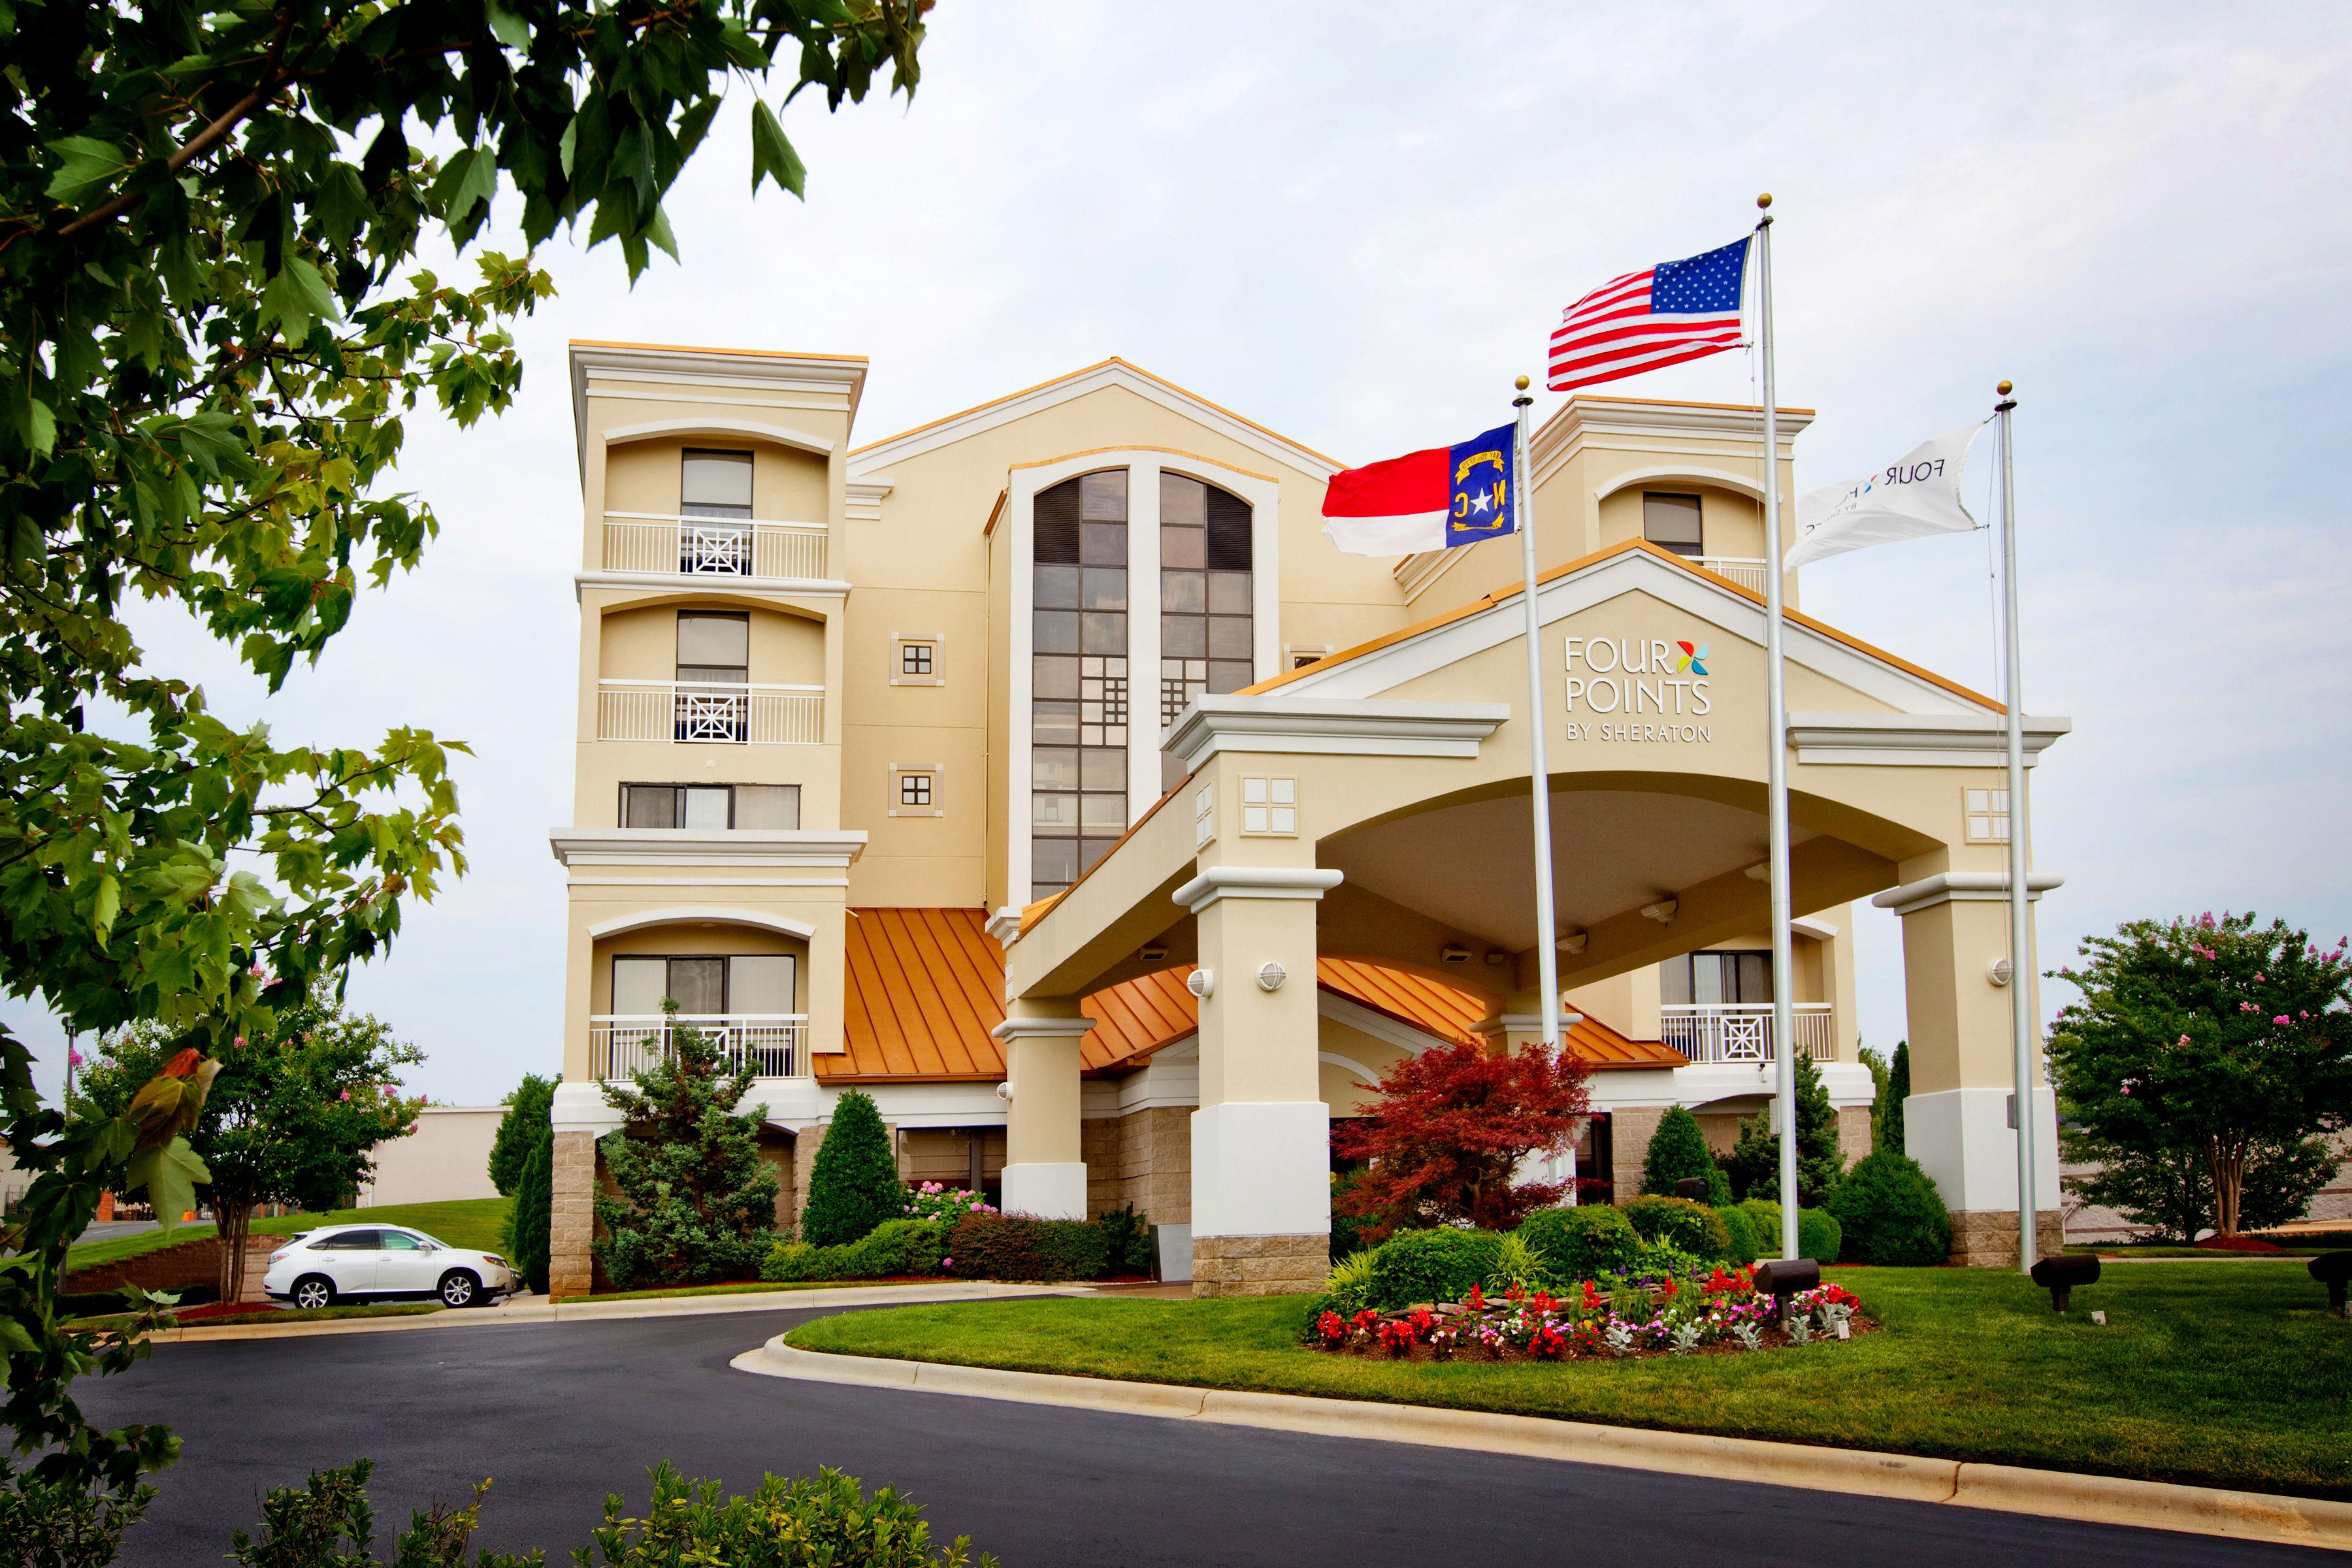 Four Points By Sheraton Charlotte Pineville Pineville North Carolina Nc